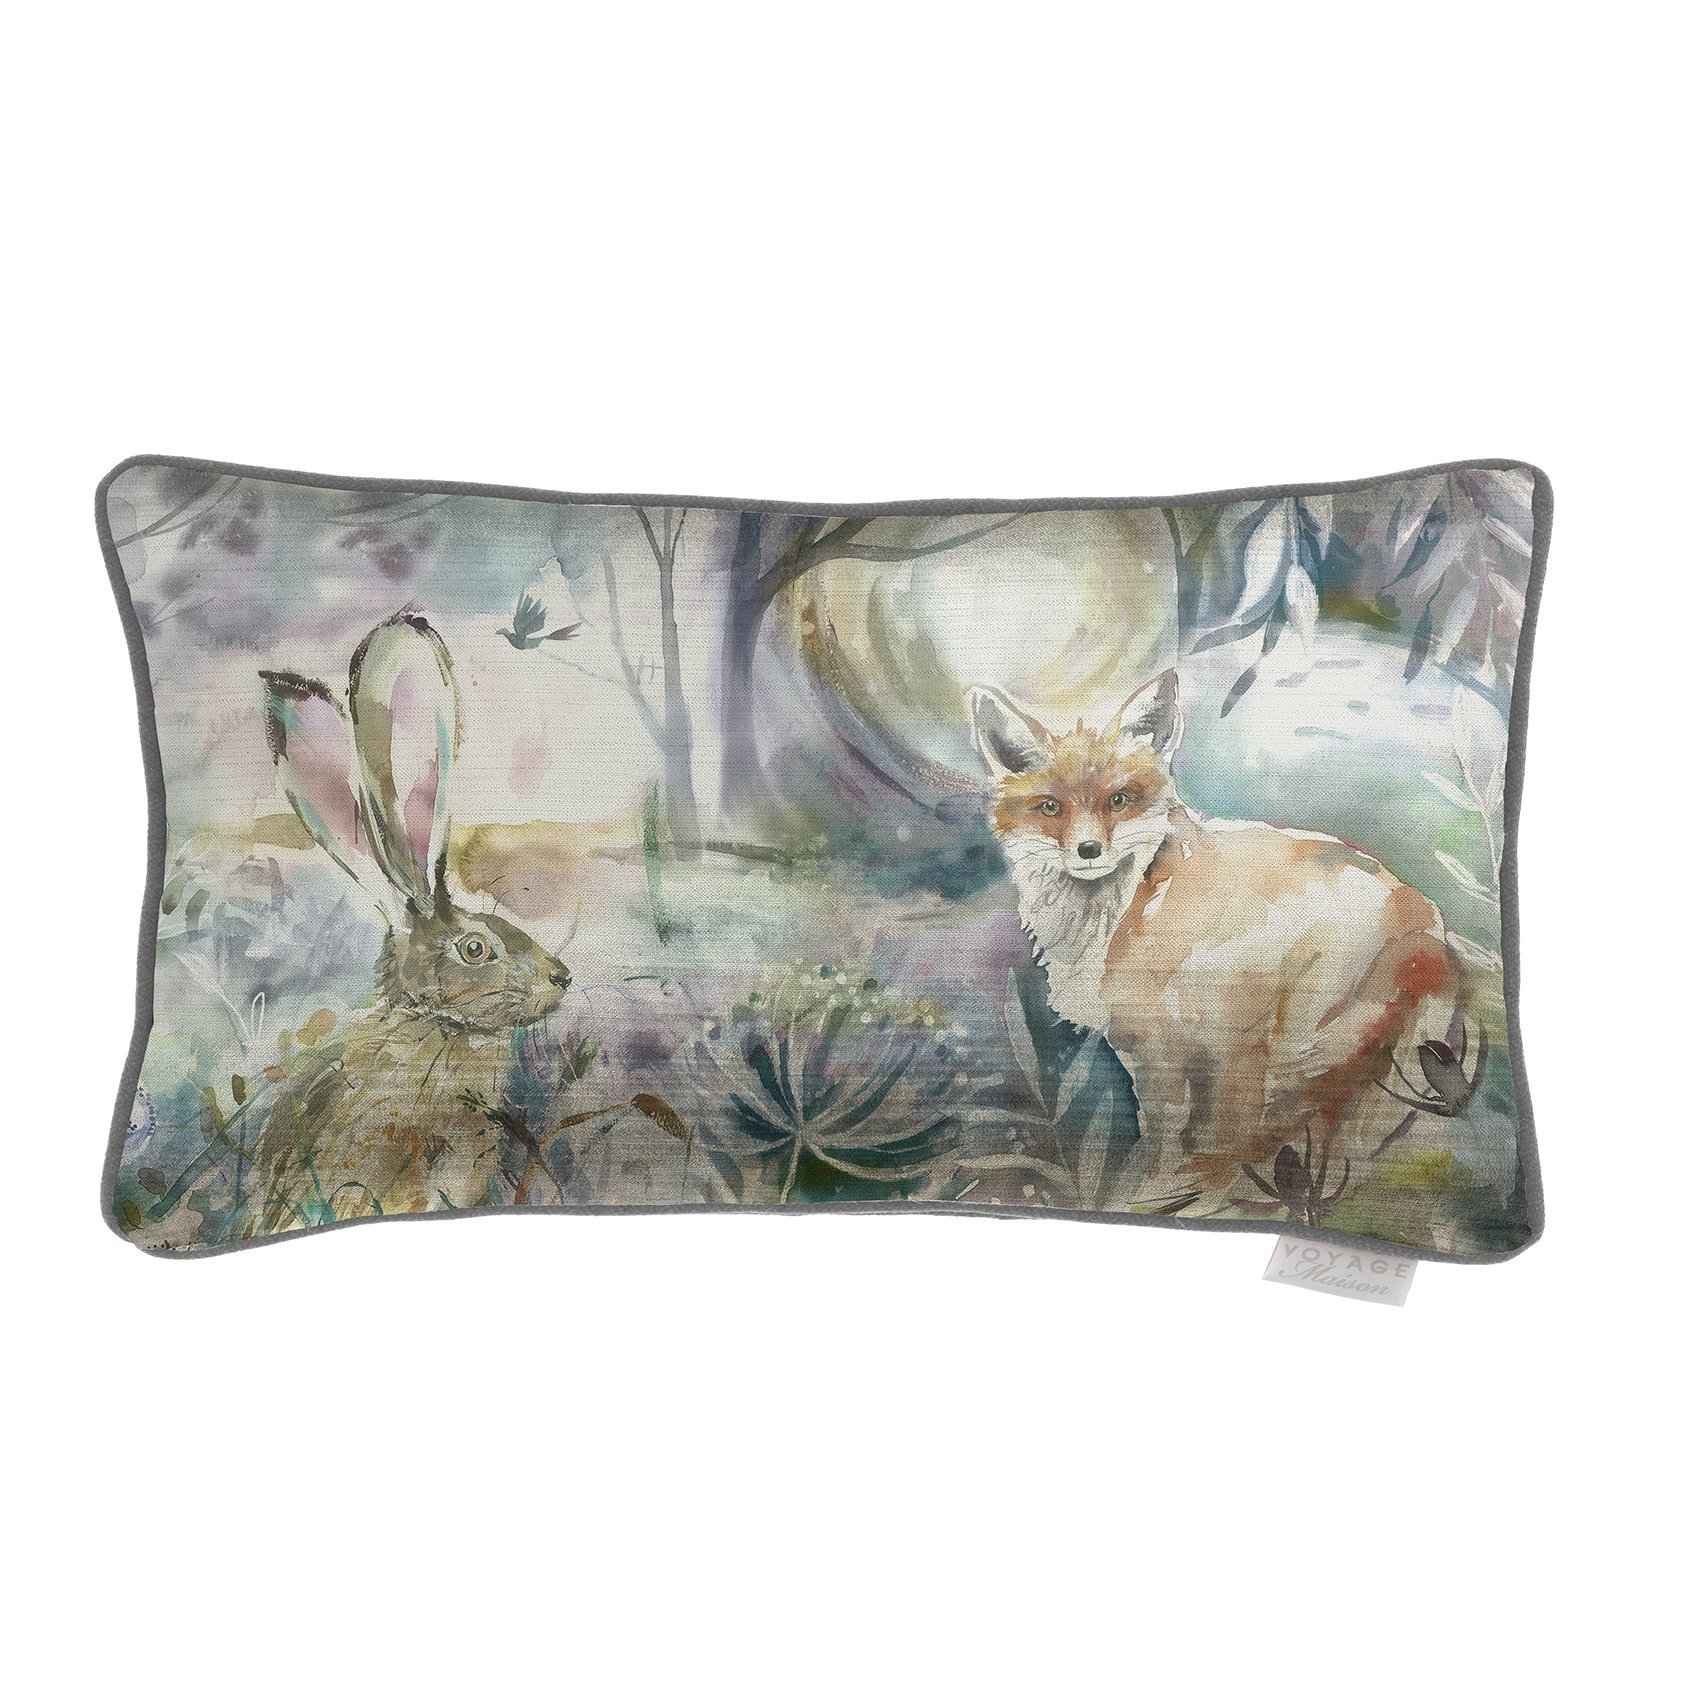 Voyage Fox and Hare Cushion